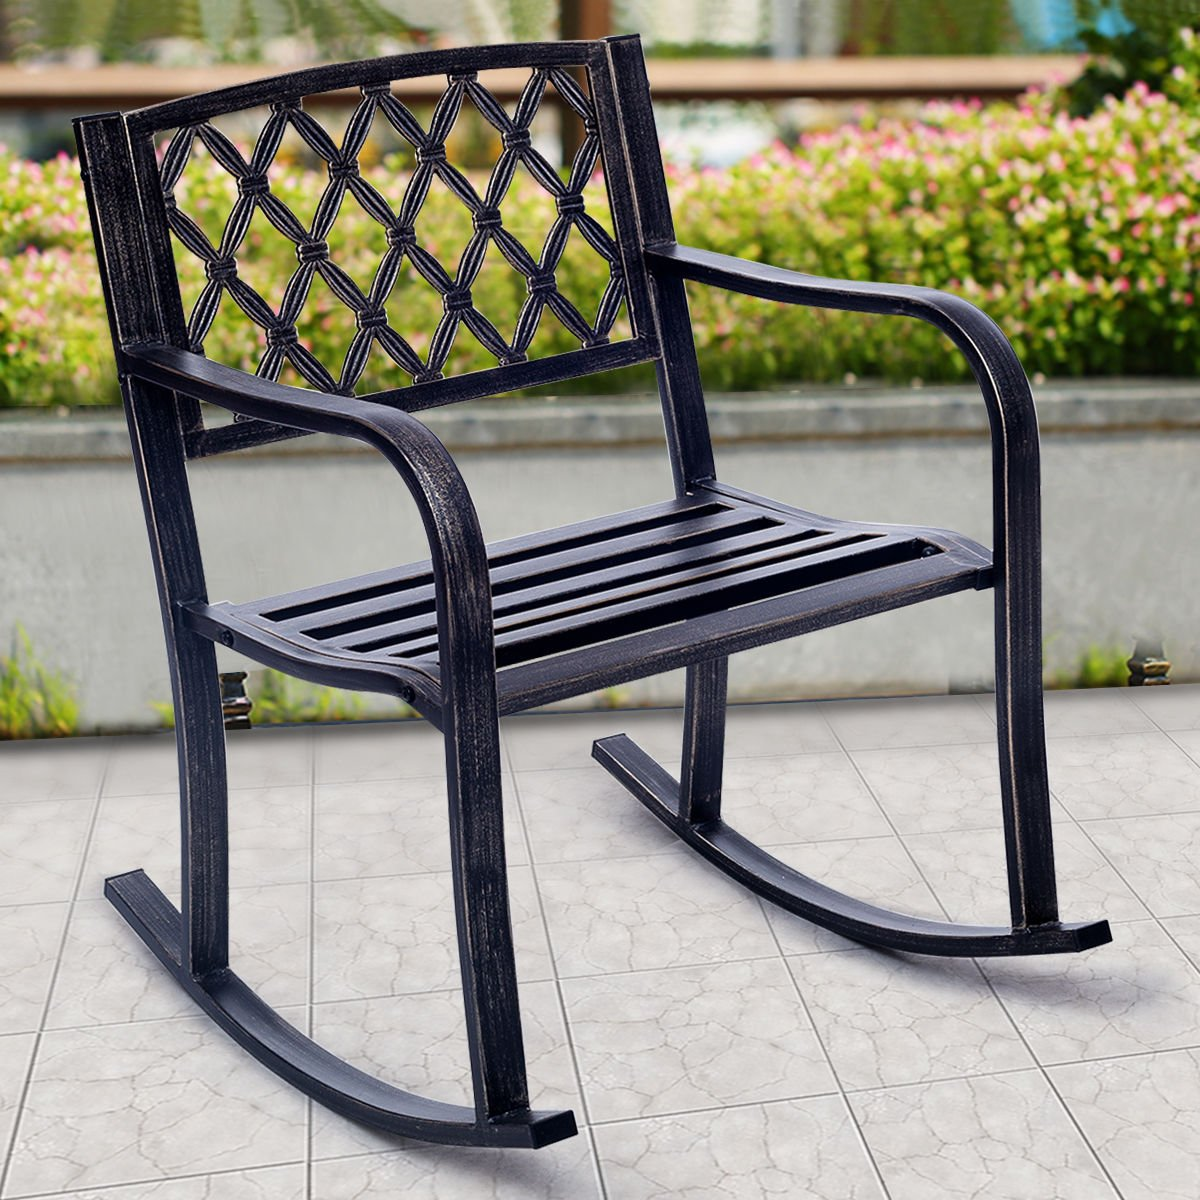 Giantex Patio Metal Rocking Chair Porch Seat Deck Outdoor Backyard Glider Rocker, Bronze